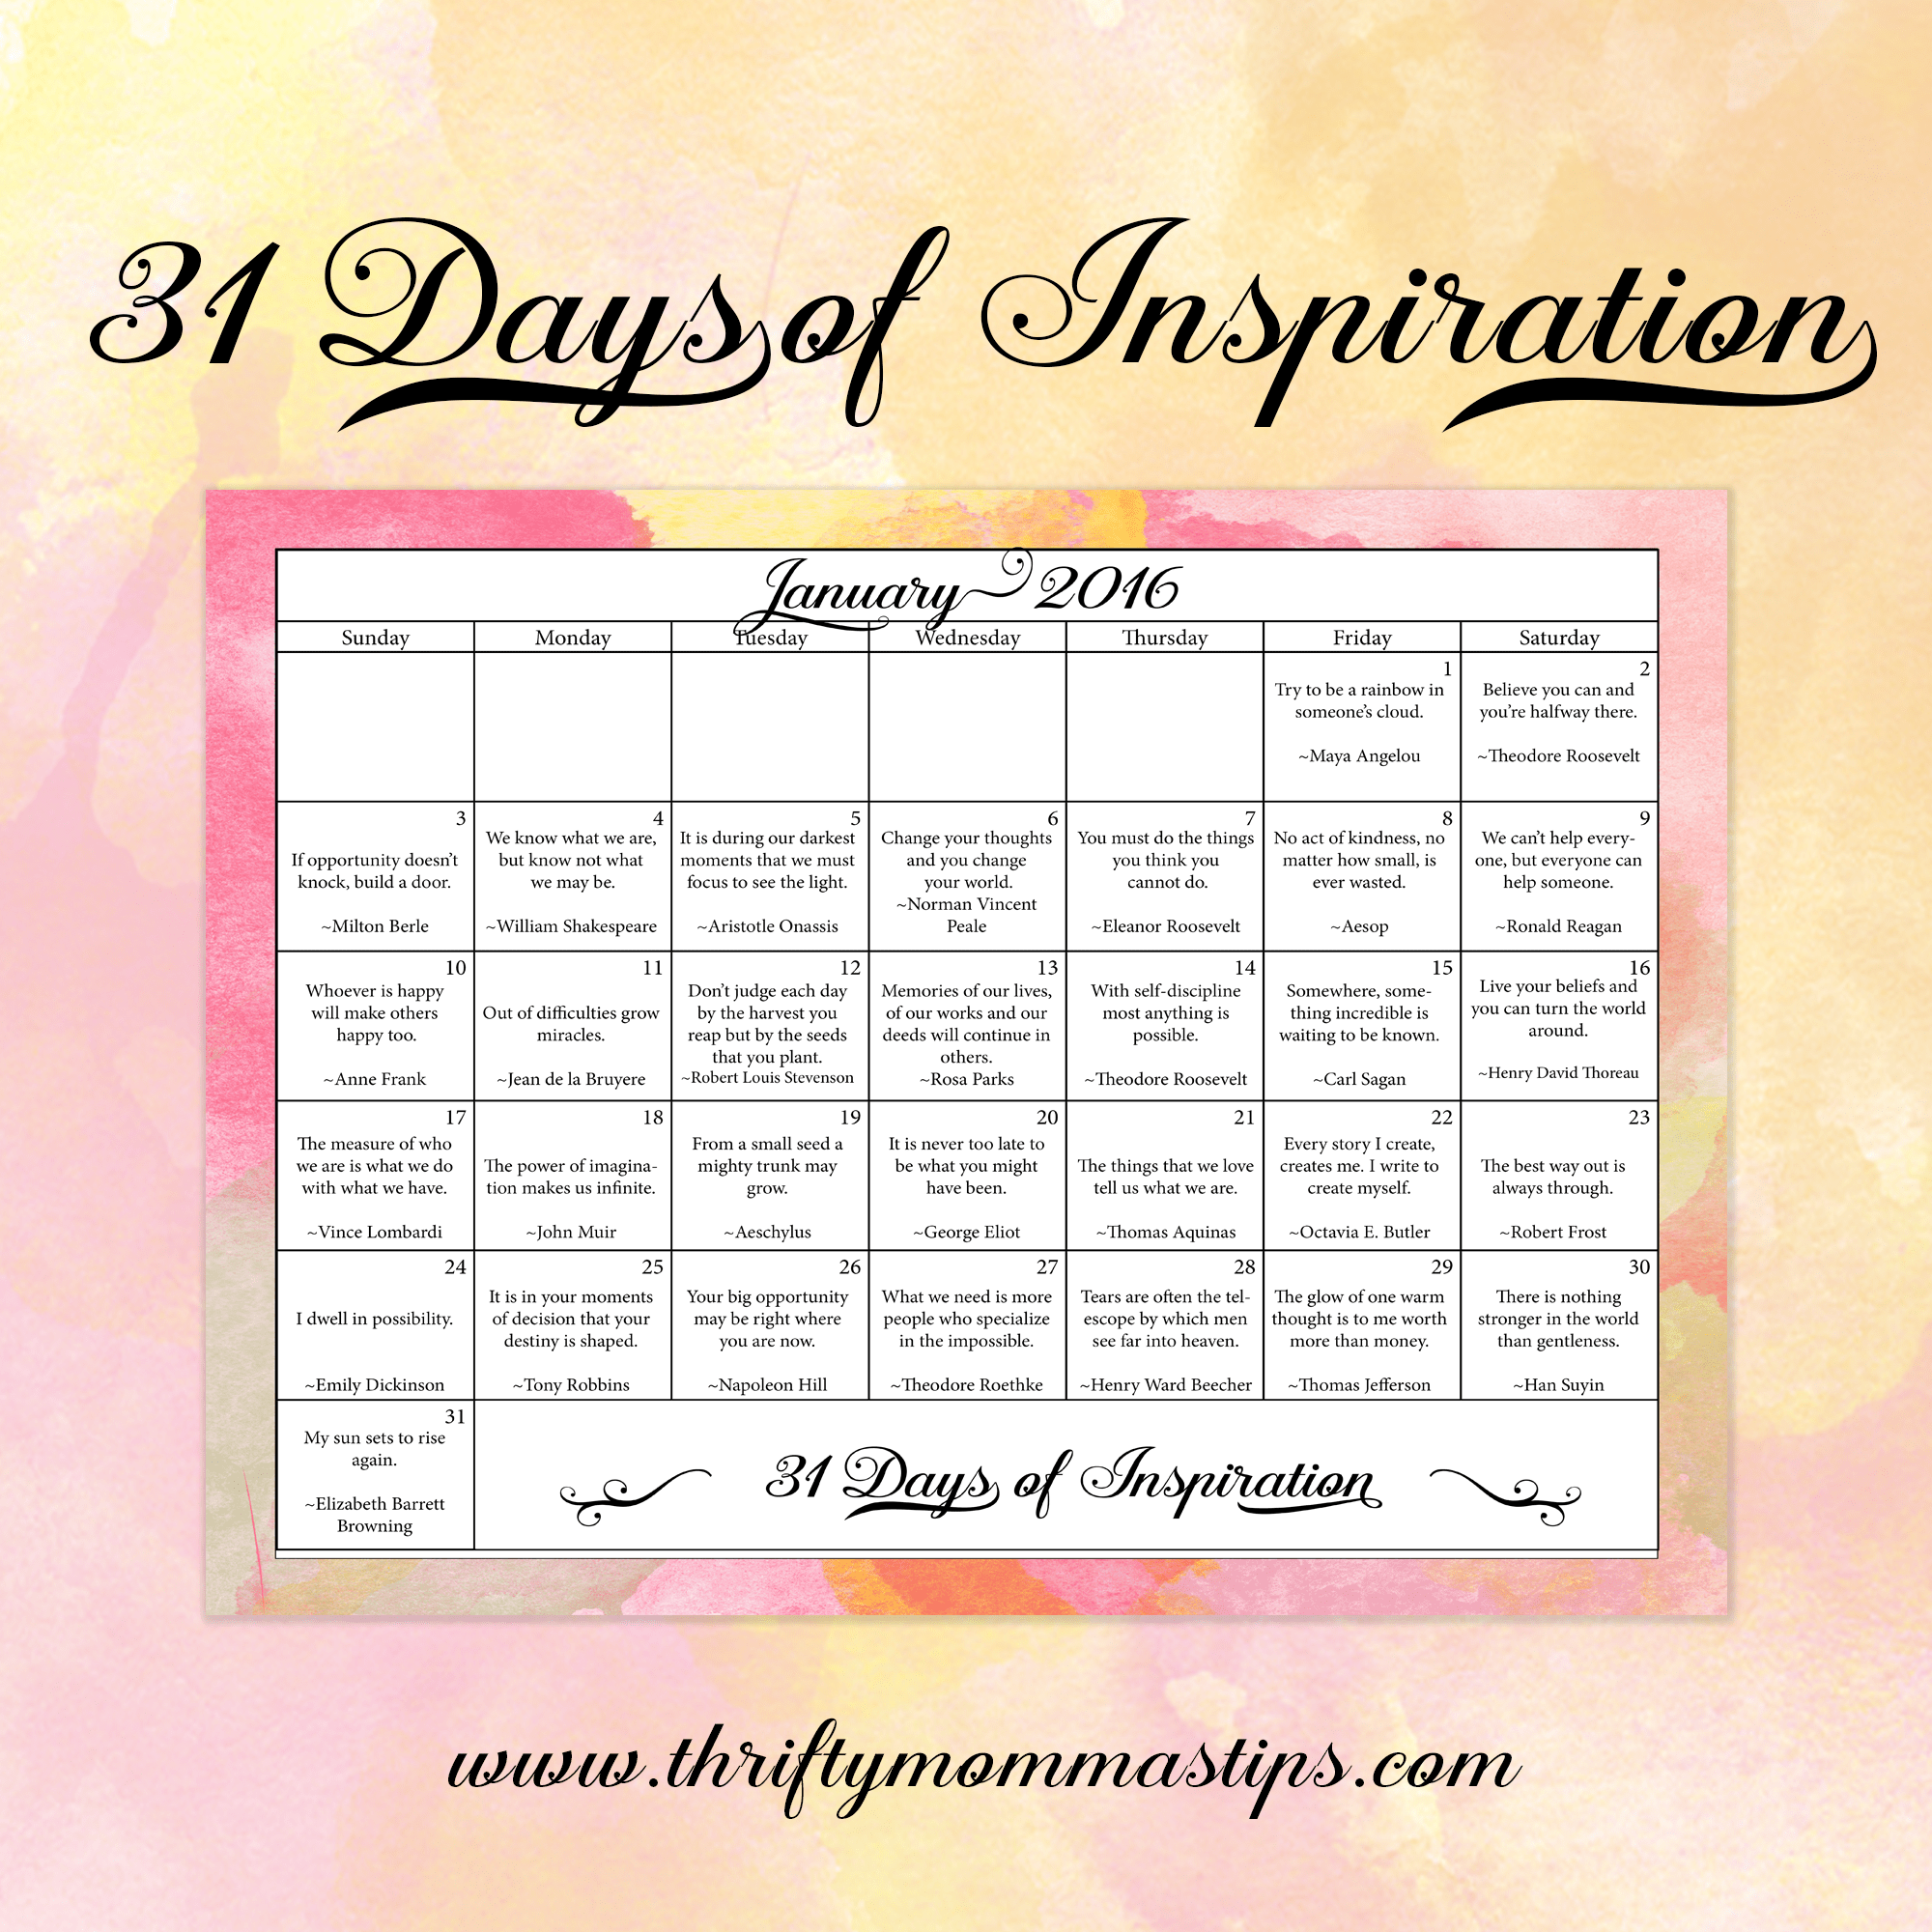 31 Days of Positive Messages Inspirational Calendar - Thrifty Mommas ...